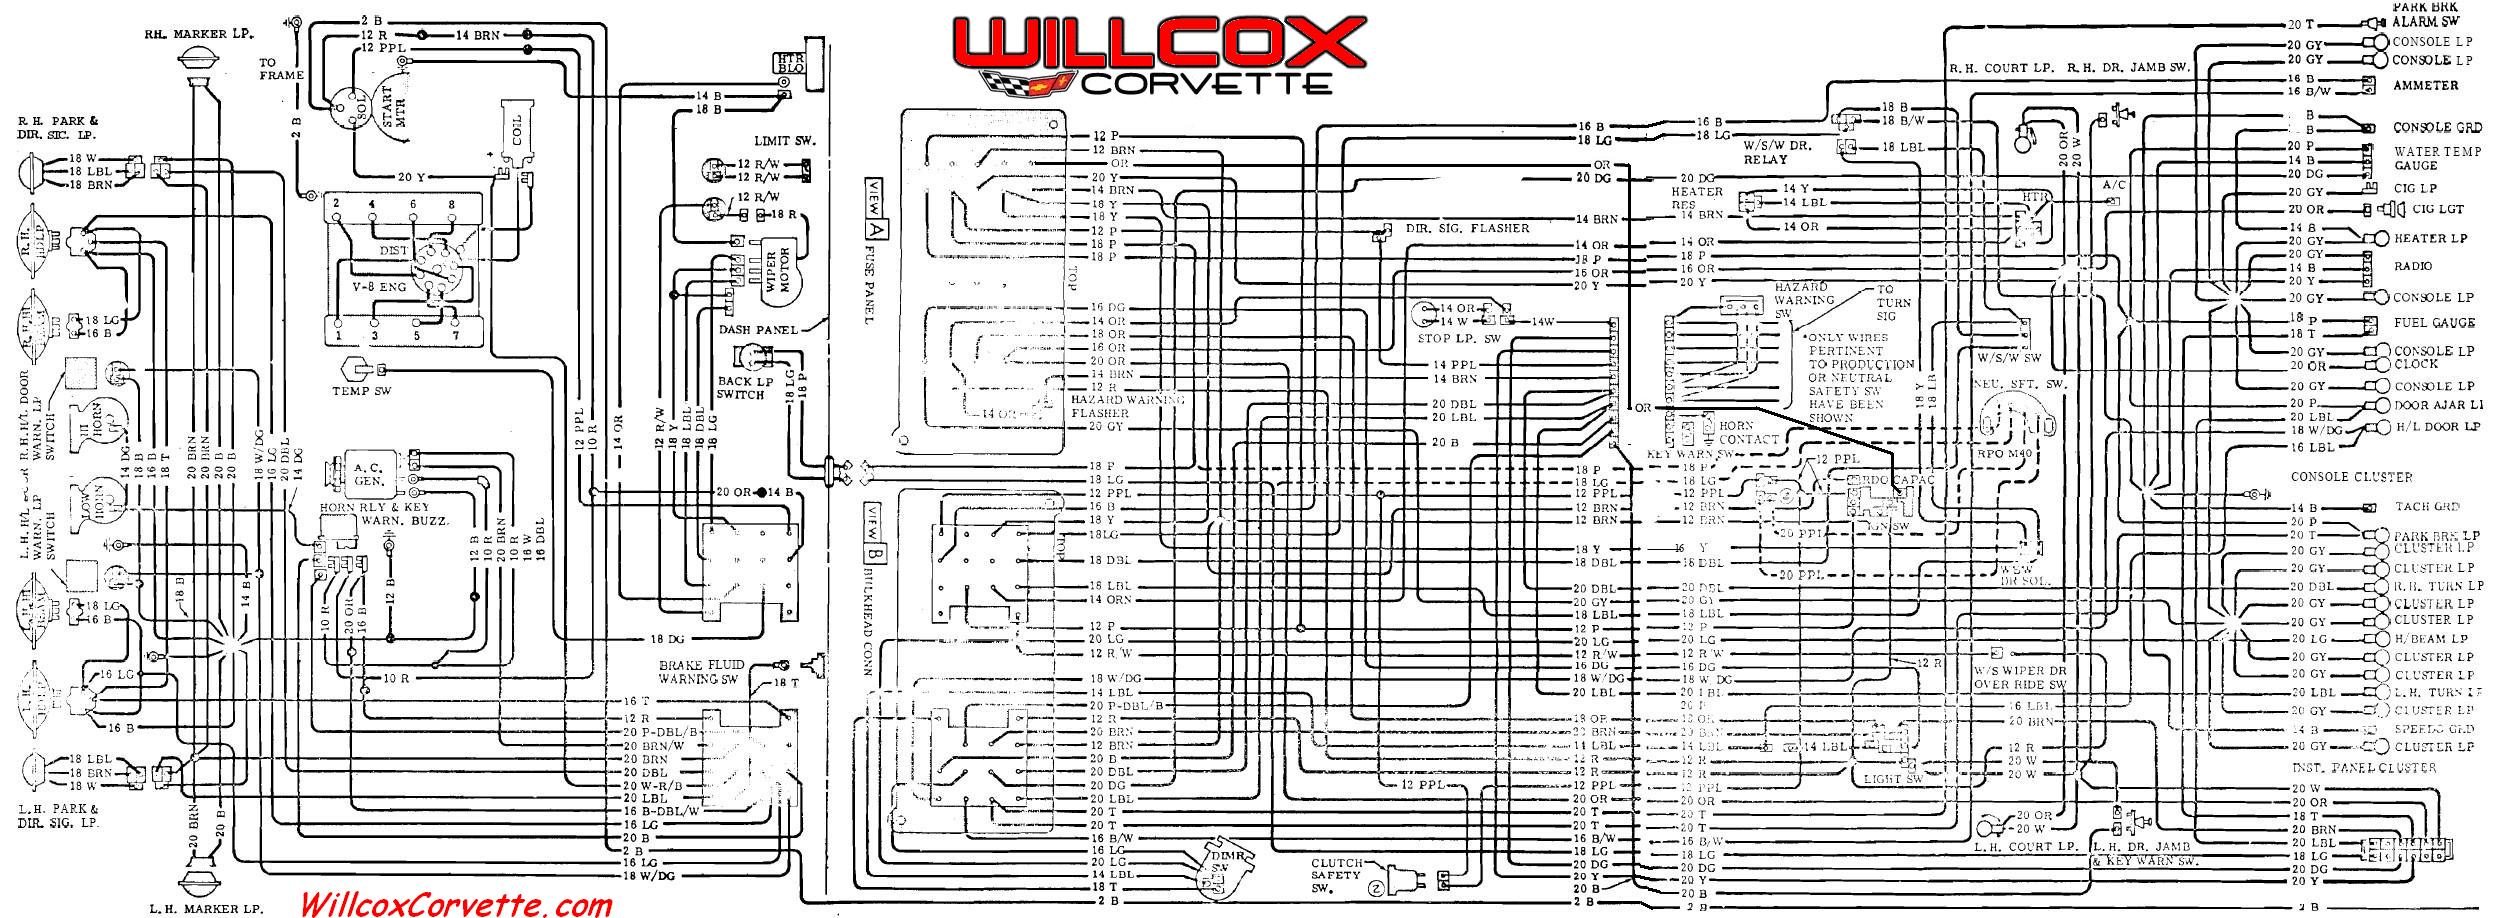 64 Chevy Corvette 327 Wiring Diagram - Amp Research Wiring Harness -  air-bag.periihh1.jeanjaures37.frWiring Diagram Resource